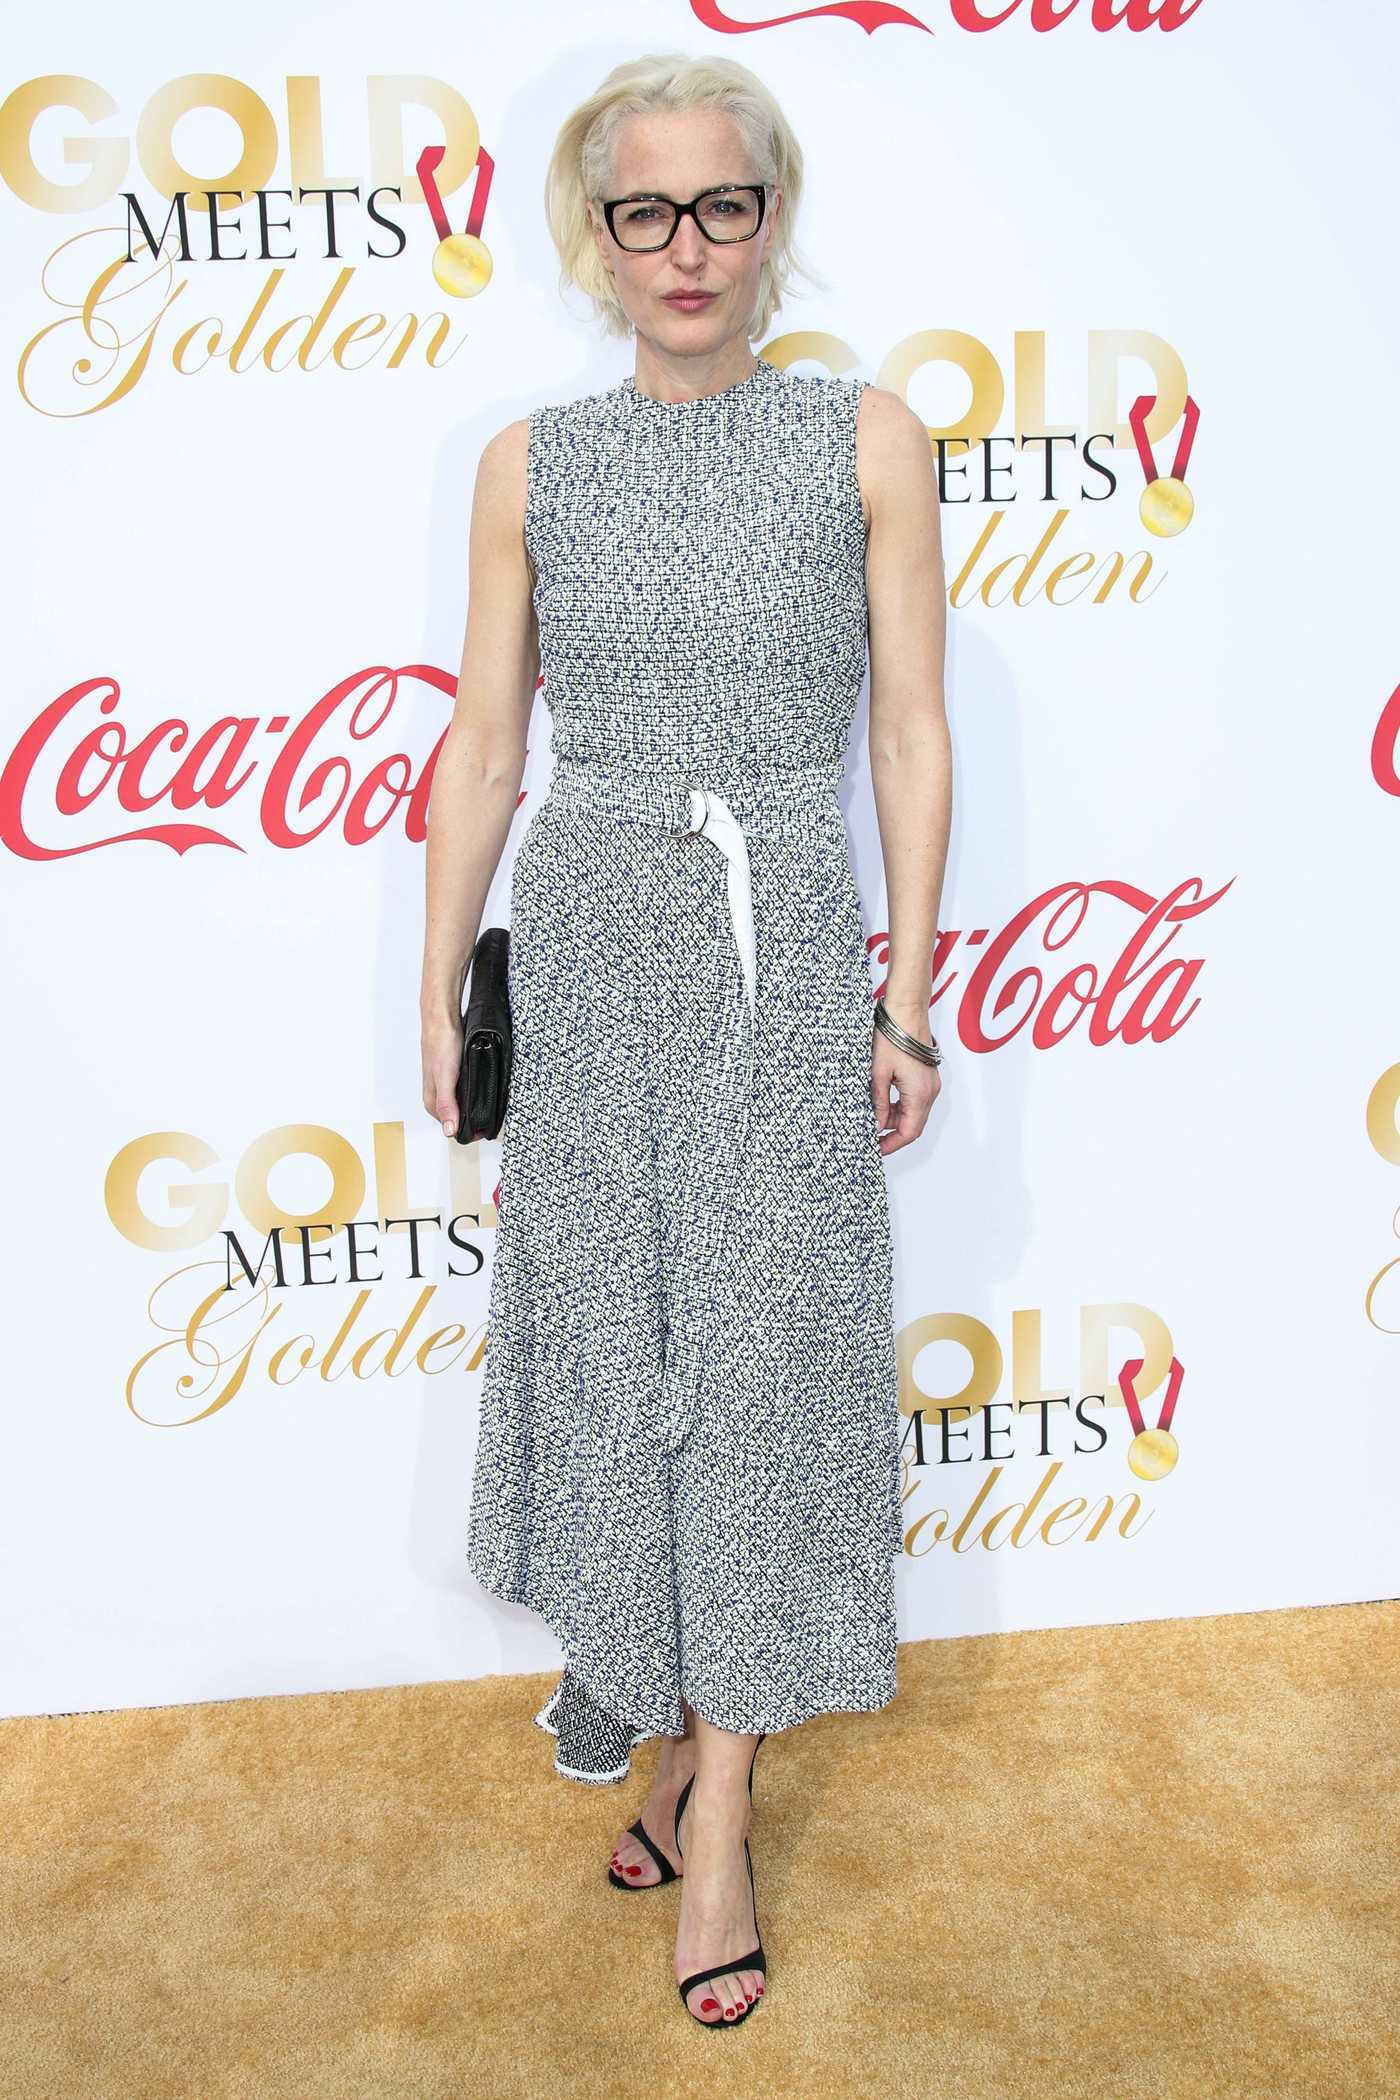 Gillian Anderson Arrives at the Gold Meets Golden 5th Anniversary Party in LA 01/06/2018